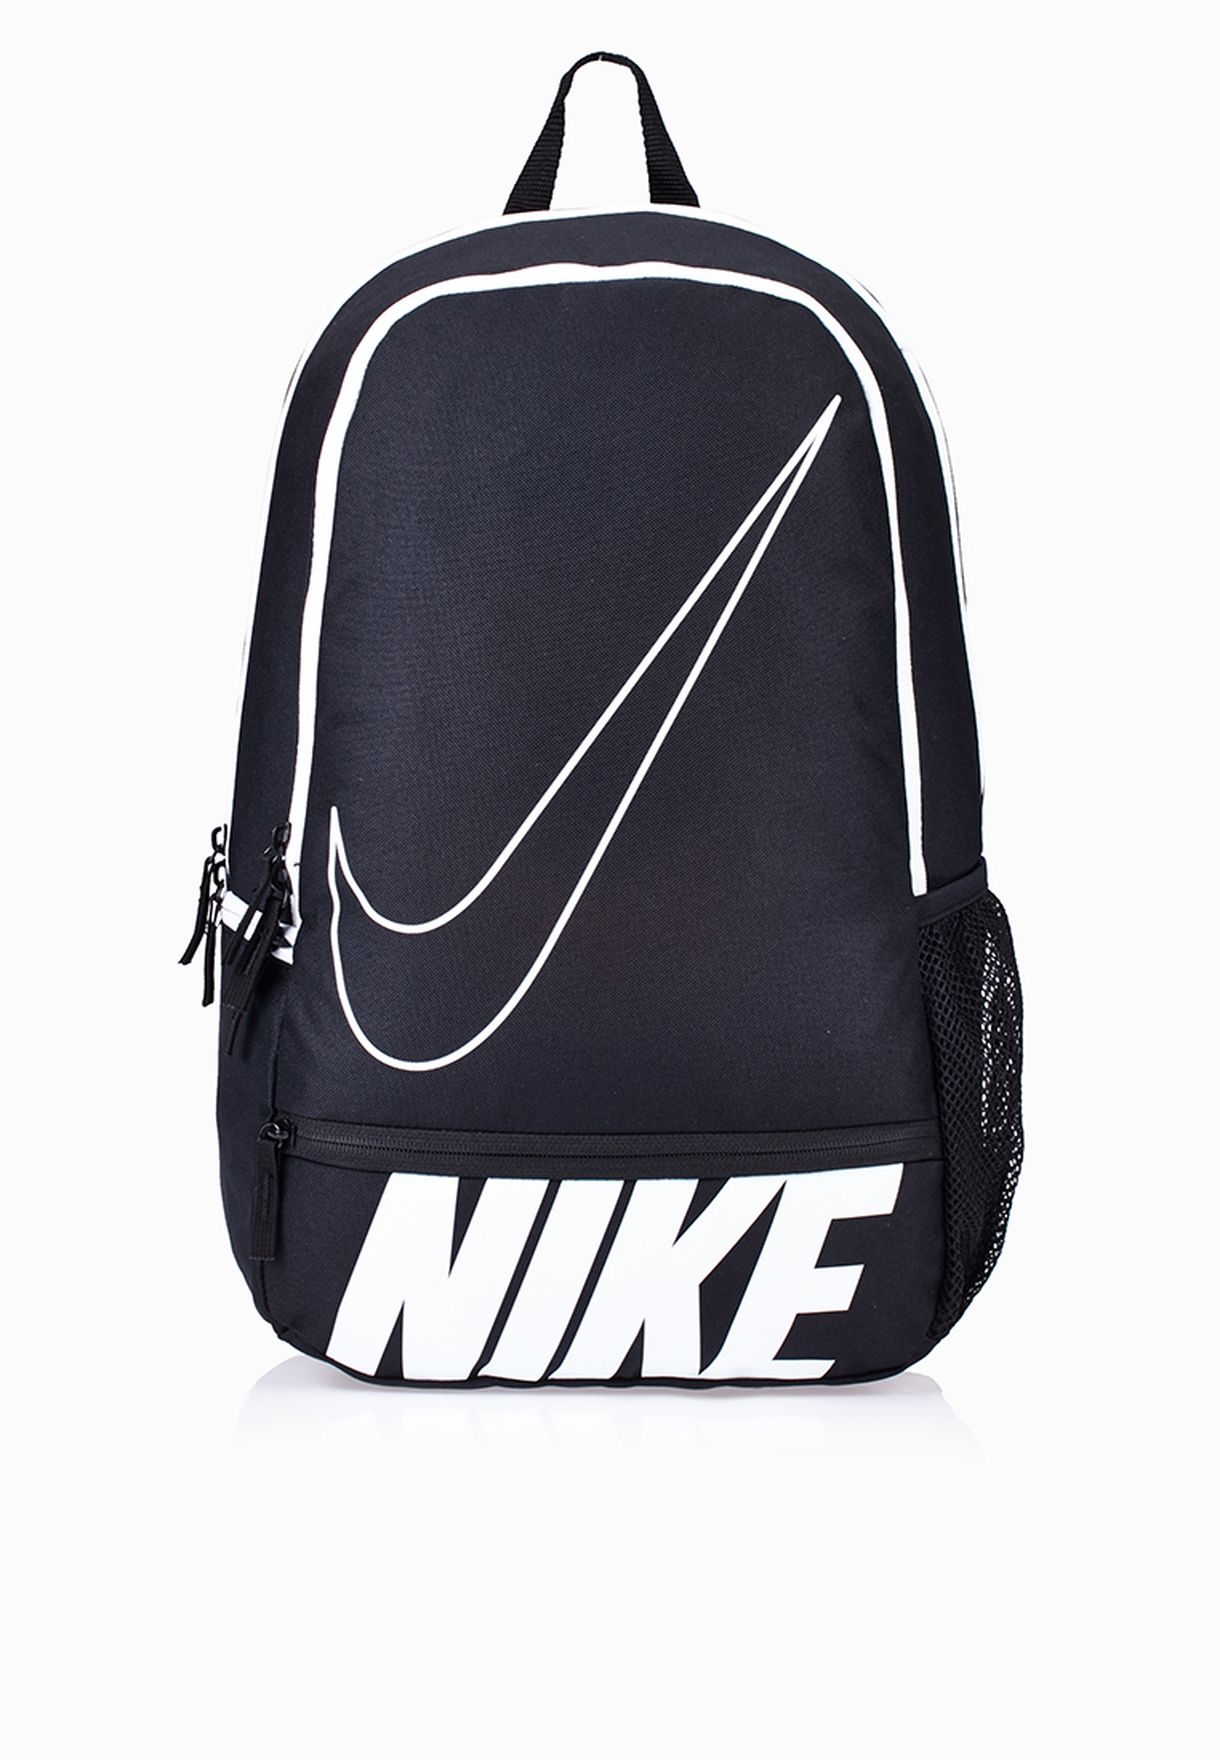 d74c224ffcdc Shop Nike black Classic North Backpack BA4863-001 for Men in Saudi -  NI727AC81CYK